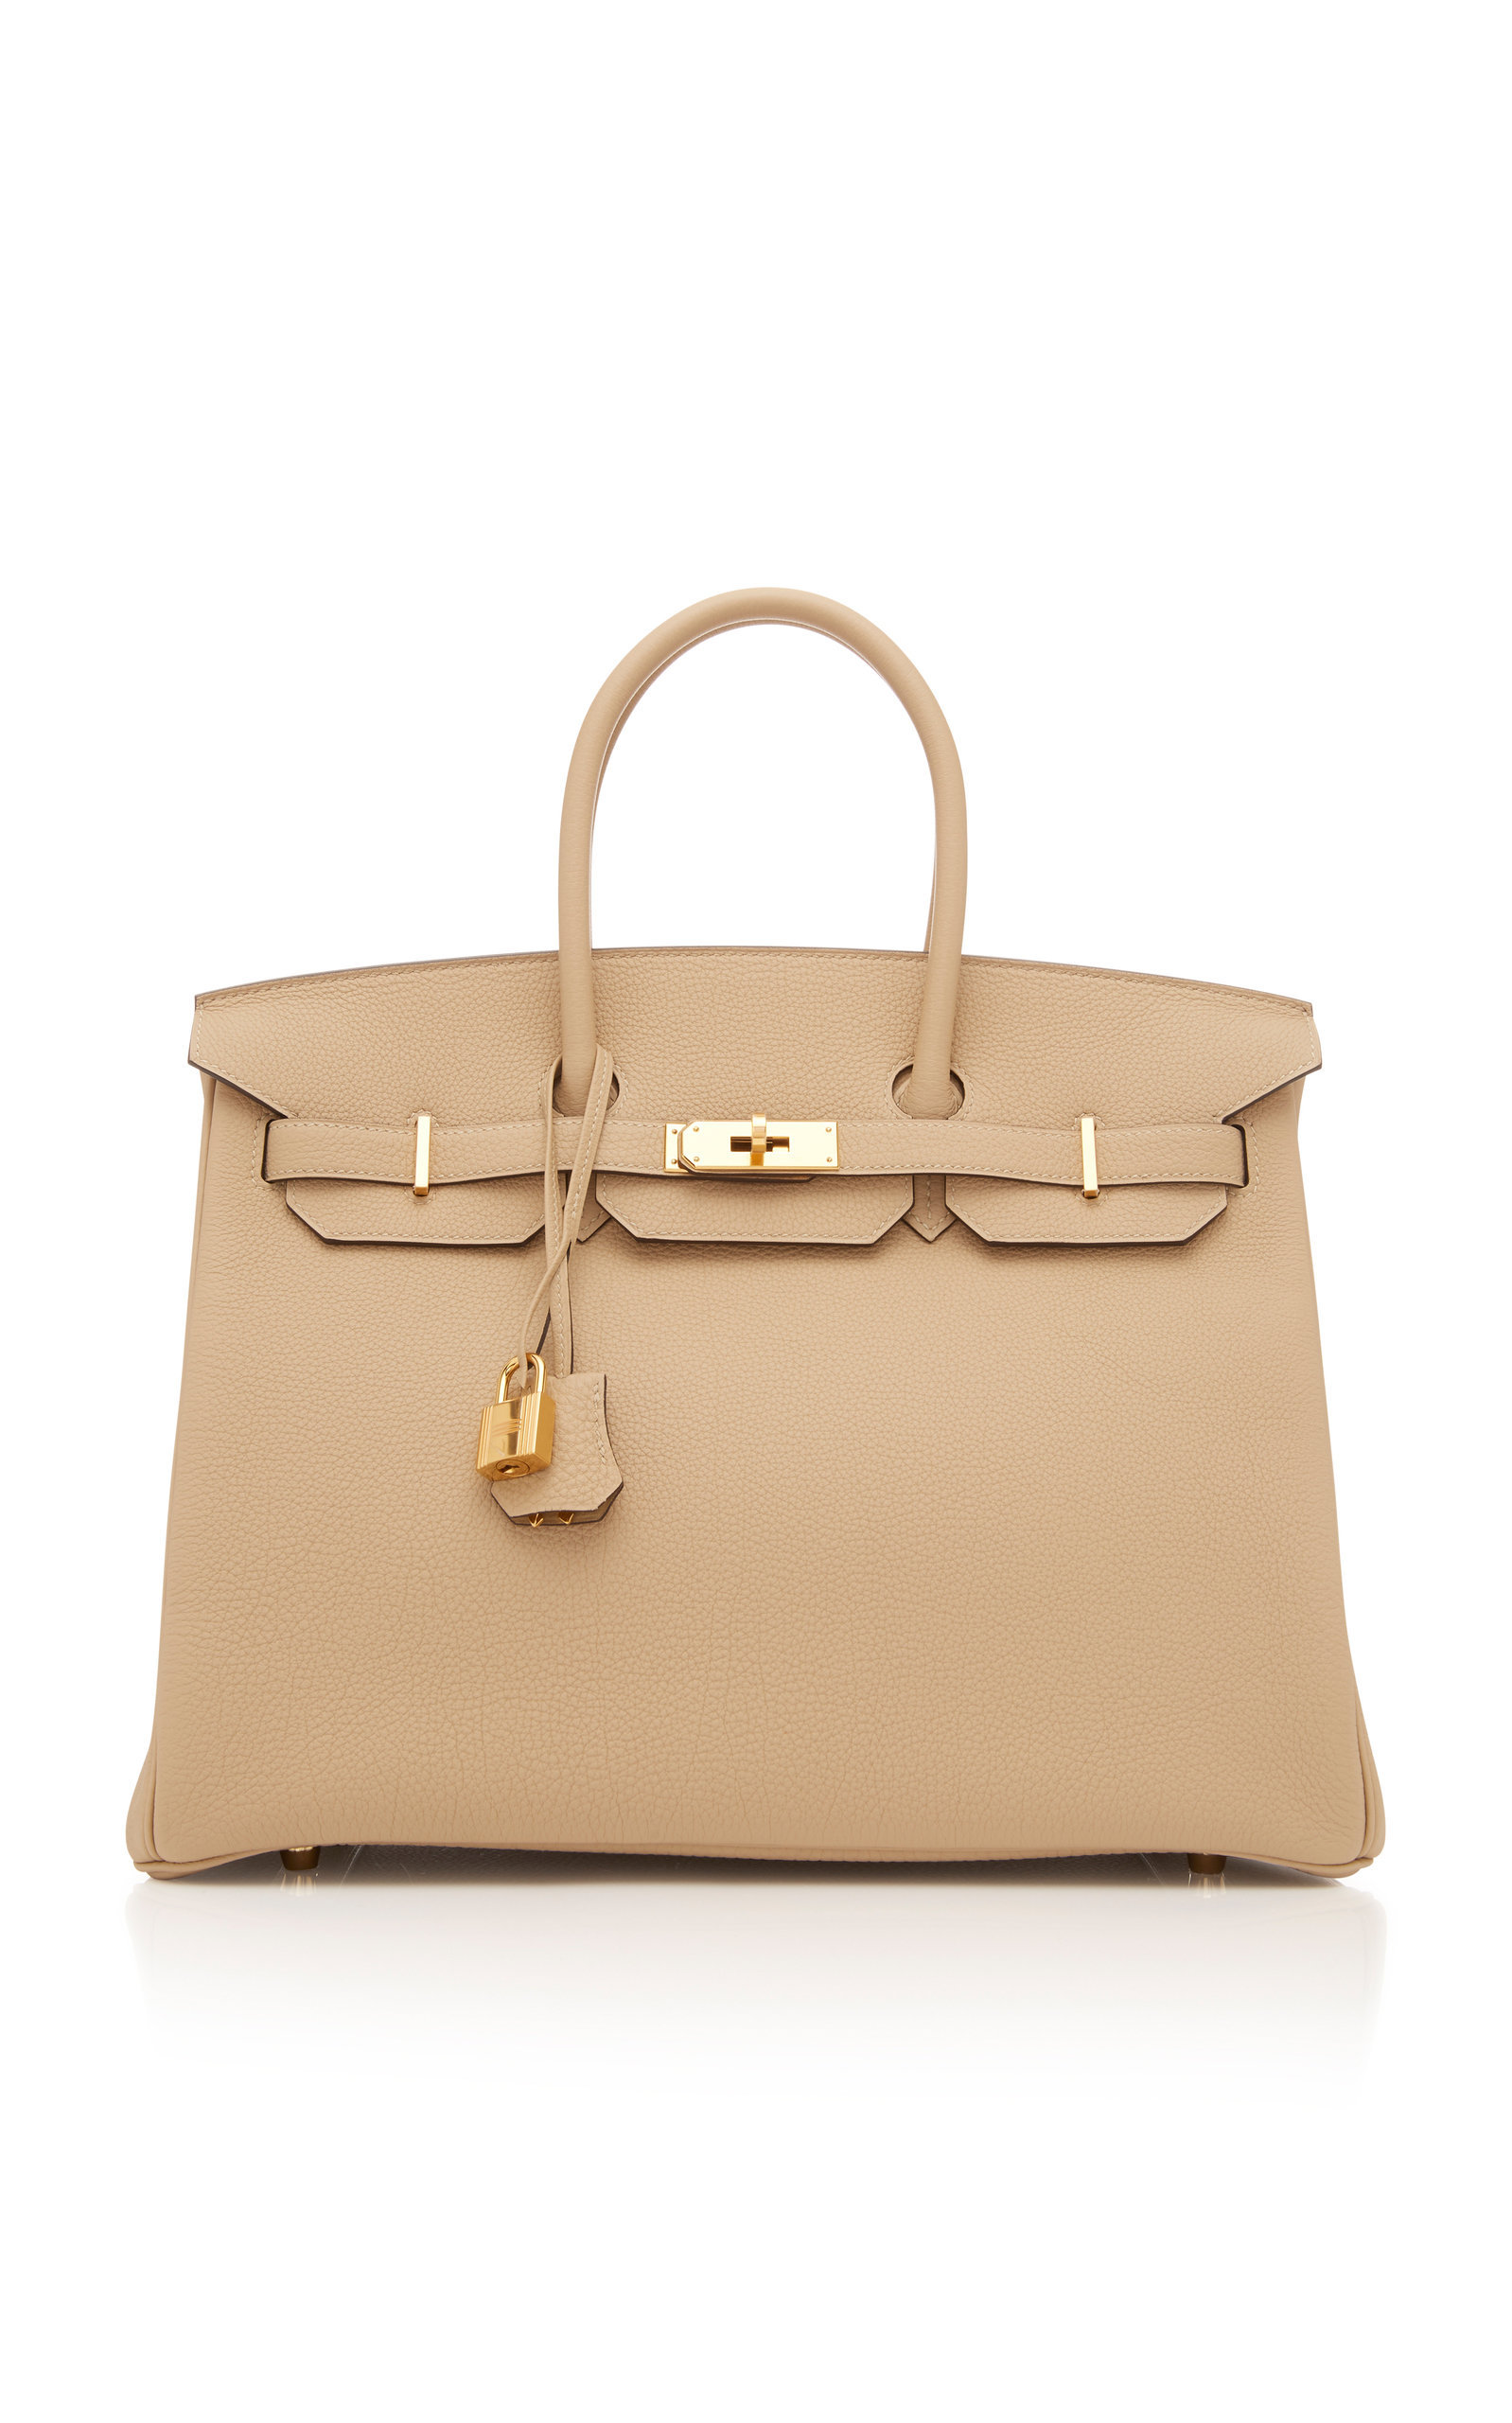 4d5838dc70 Hermes 35cm Trench Togo Leather Birkin by HERMÈS VINTAGE BY HERITAGE  AUCTIONS for Preorder on Moda Operandi